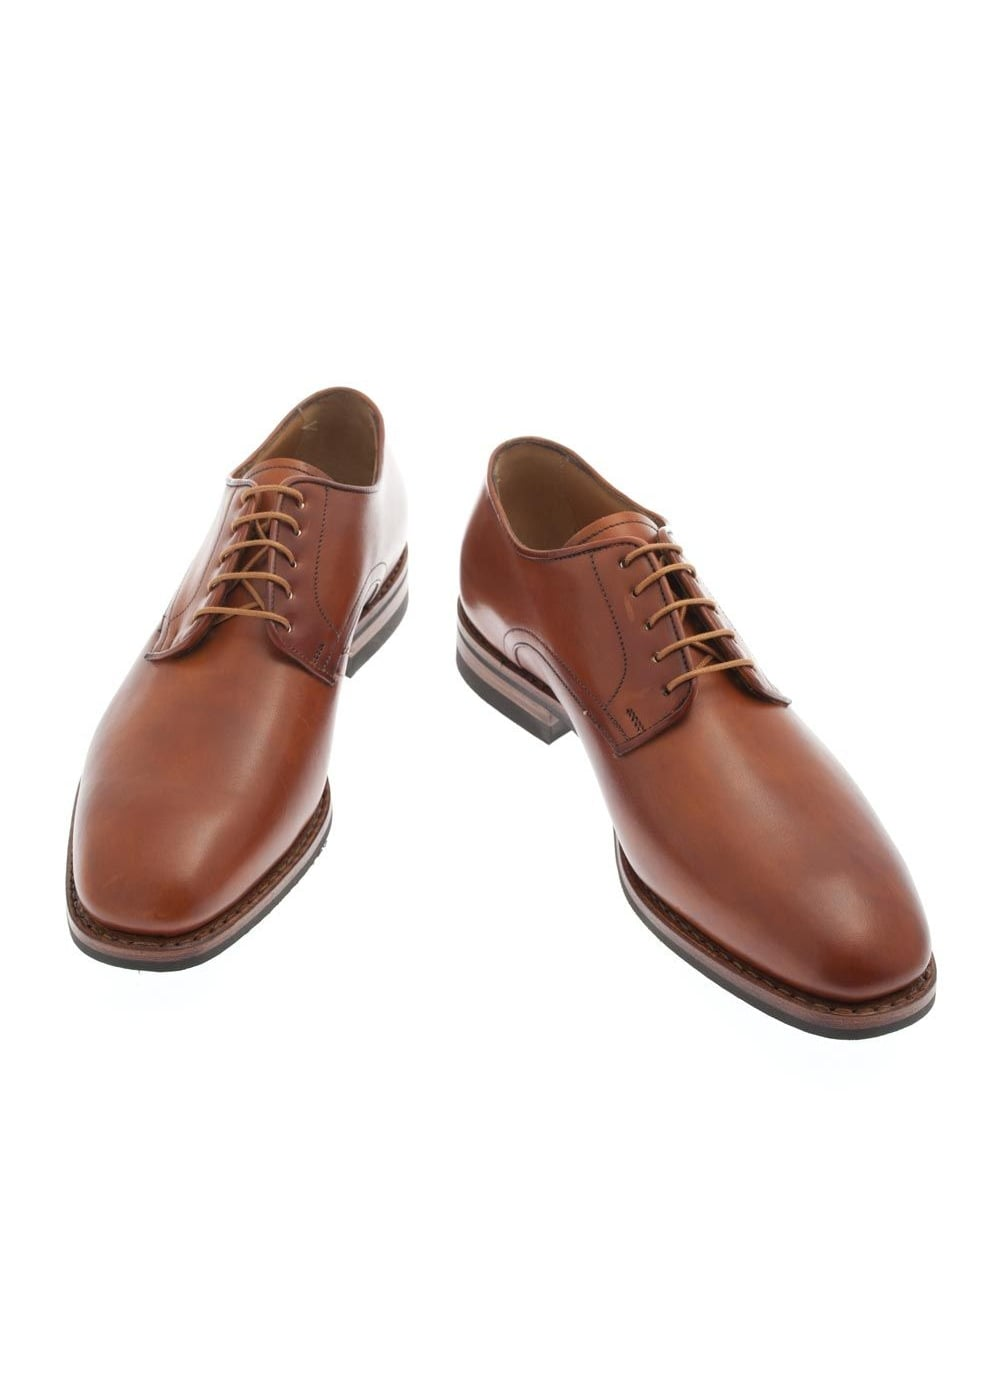 RM Williams Chiseltoe Buck Derby Shoes  Large Image